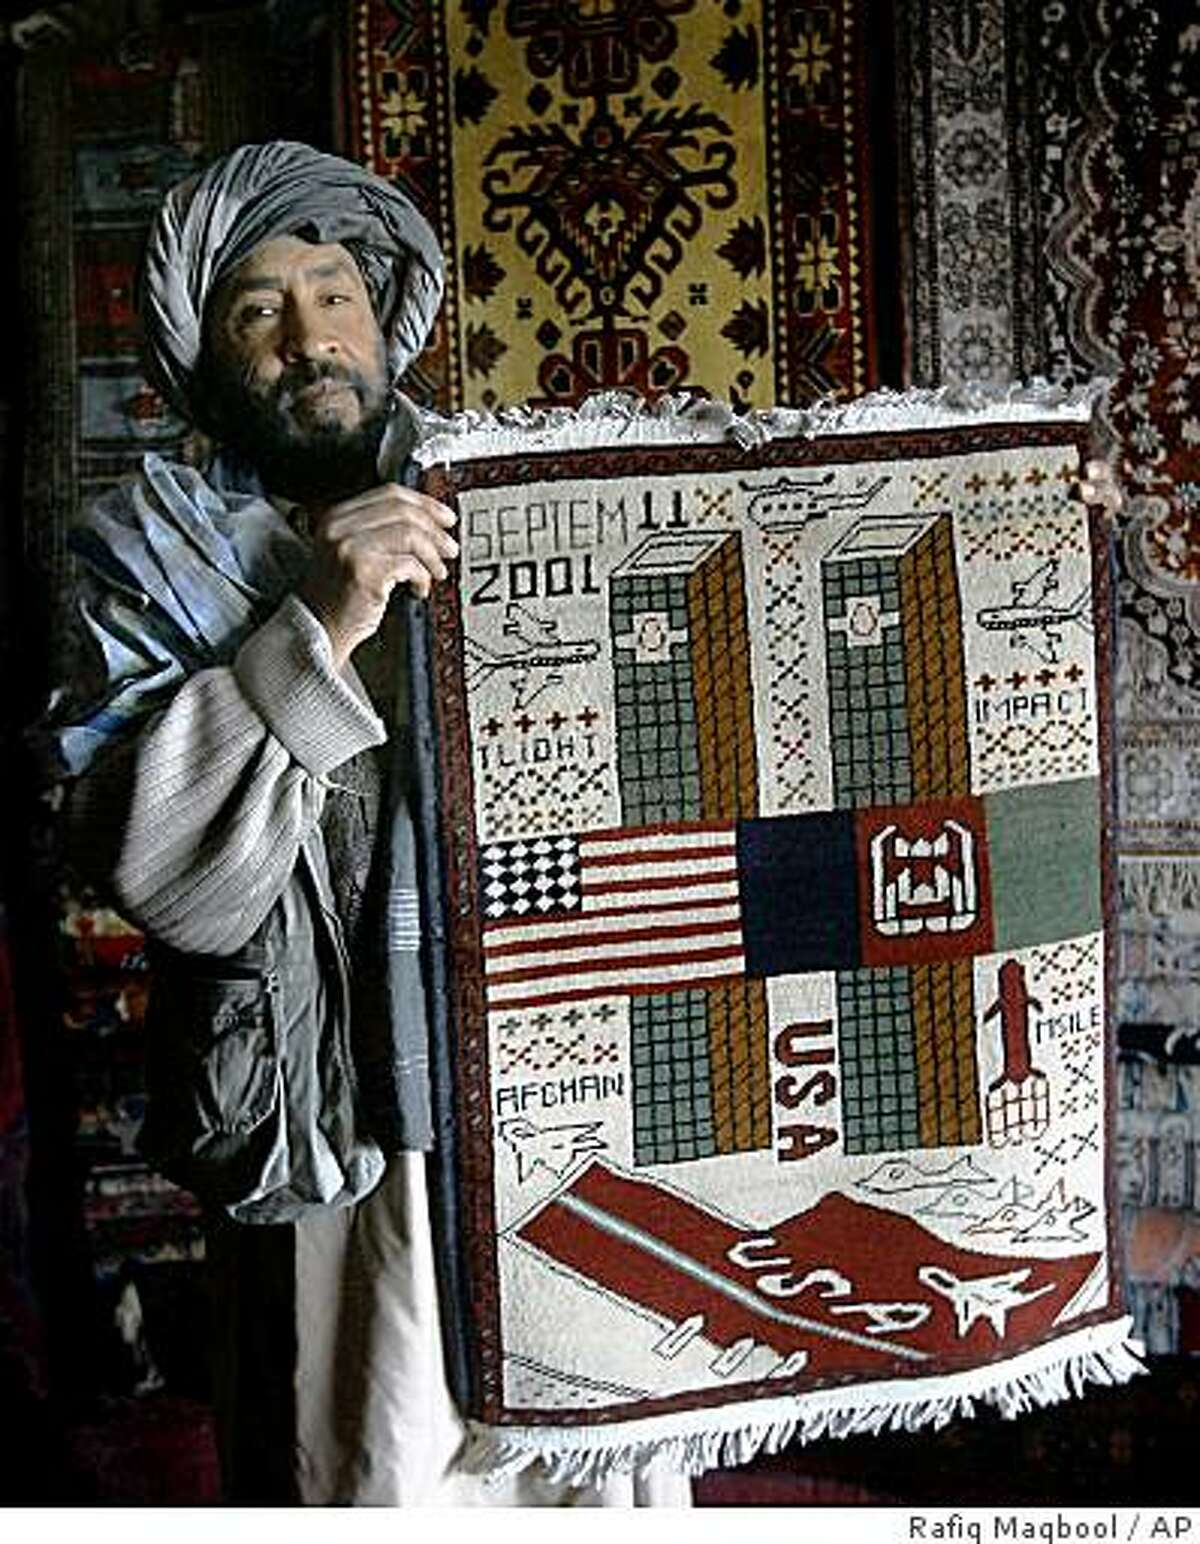 """** ADVANCE FOR SUNDAY, APRIL 12 **Haji Qundi Shah, an Afghan carpet seller displays a war rug which shows the planes attacking the World Trade Center at his shop in Kabul, Afghanistan, Tuesday, Feb 24, 2009. Afghanistan's three decades of fighting and insecurity have spawned a thriving """"war rug"""" business for an international clientele of military buffs and soldiers.(AP Photo/Rafiq Maqbool)"""